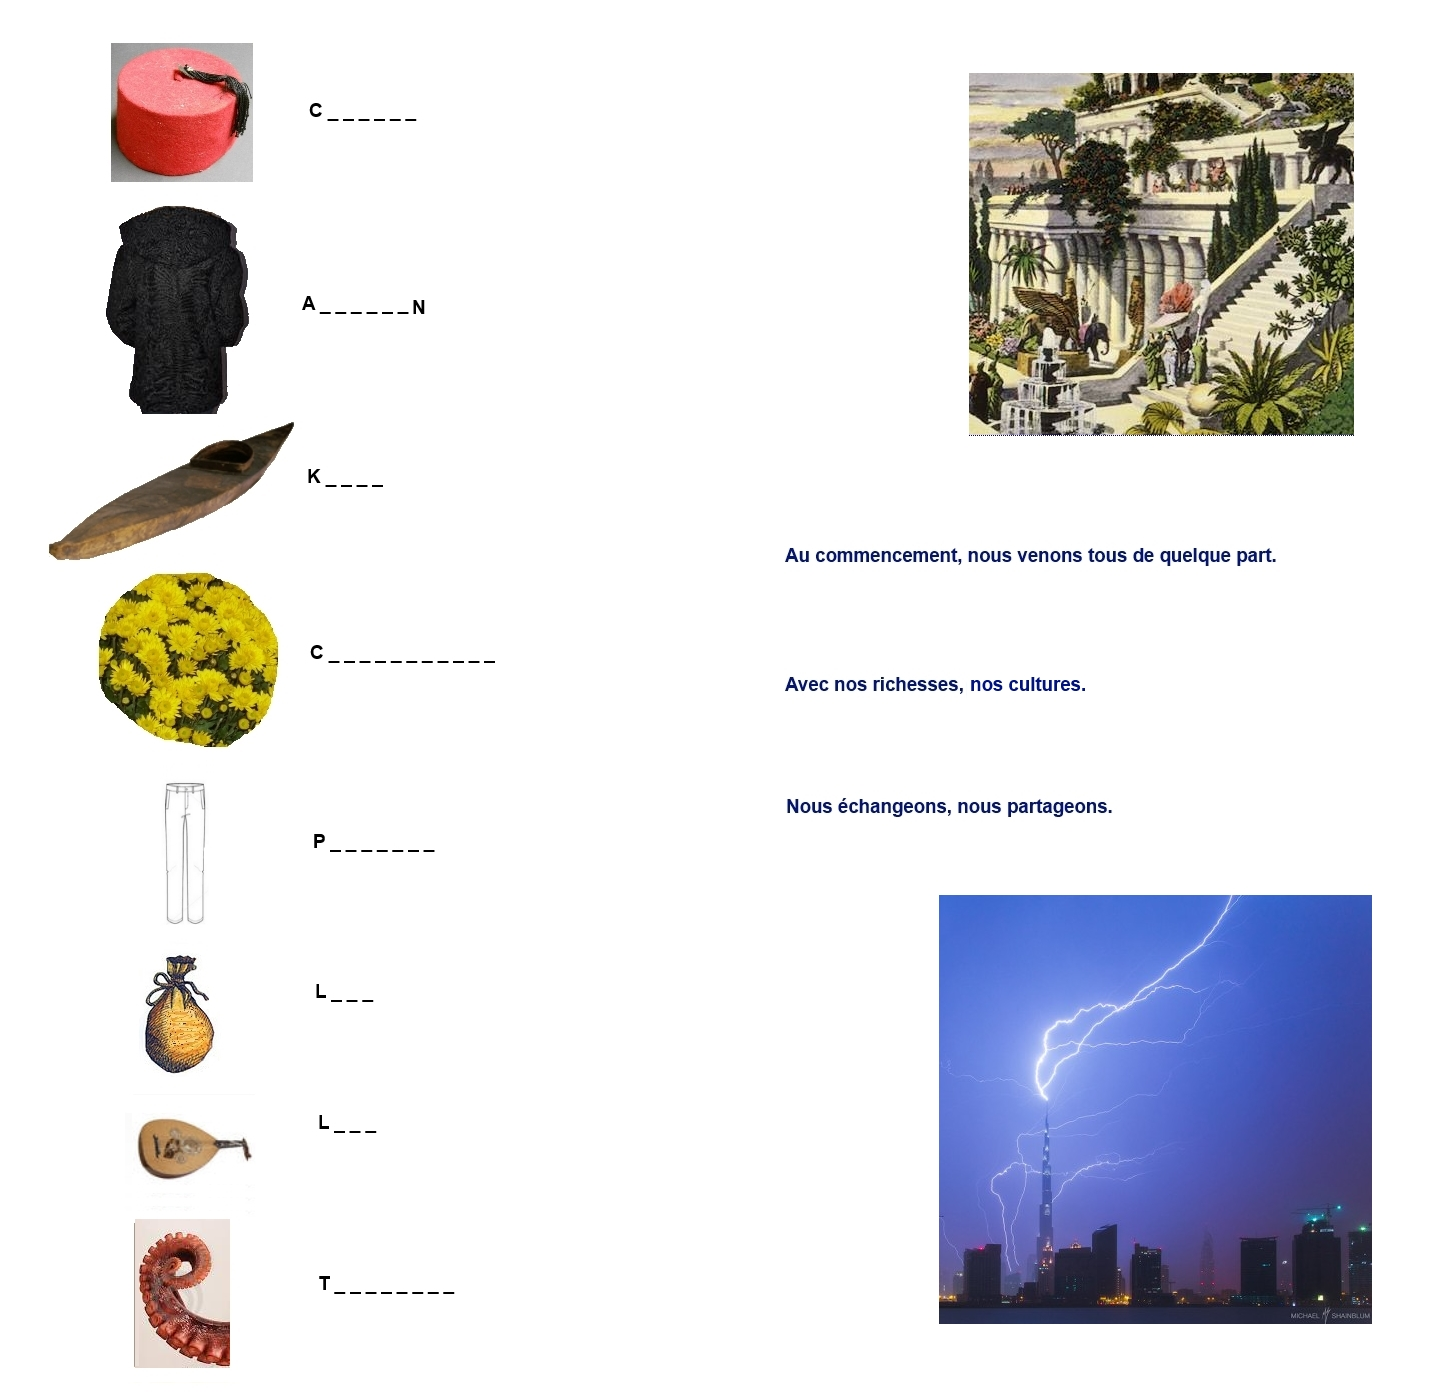 http://www.prise2tete.fr/upload/fix33-origines-genese.jpg